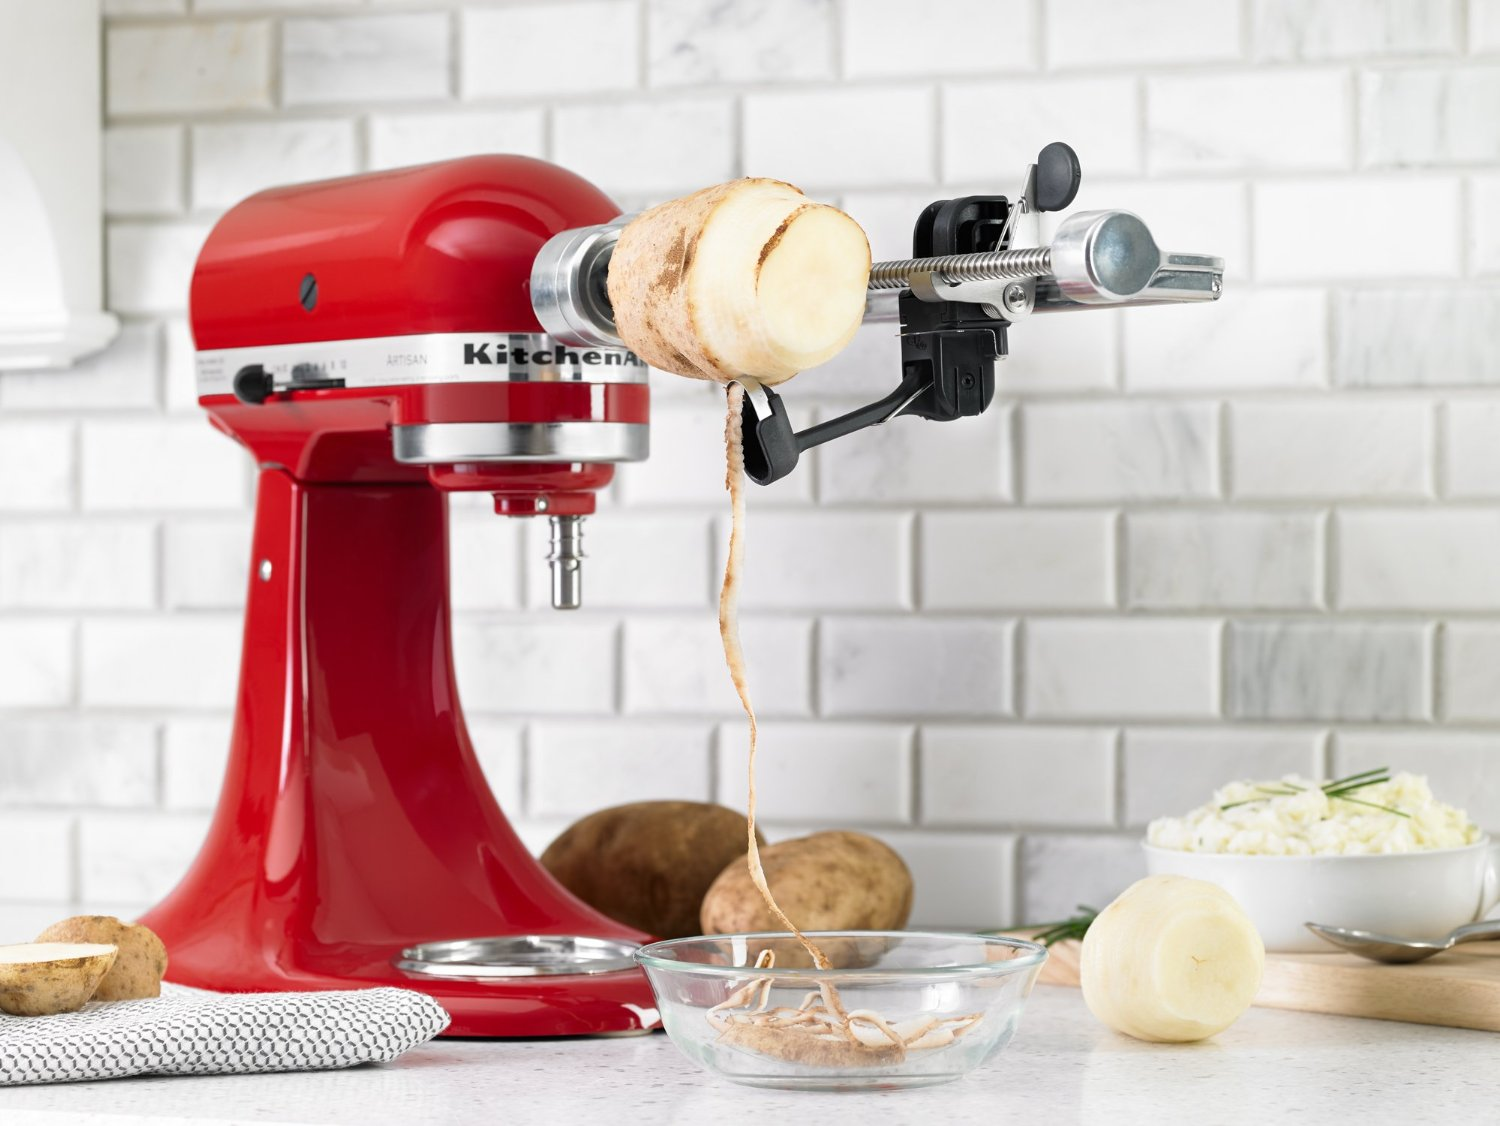 Why KitchenAid Makes The Best Stand Mixer